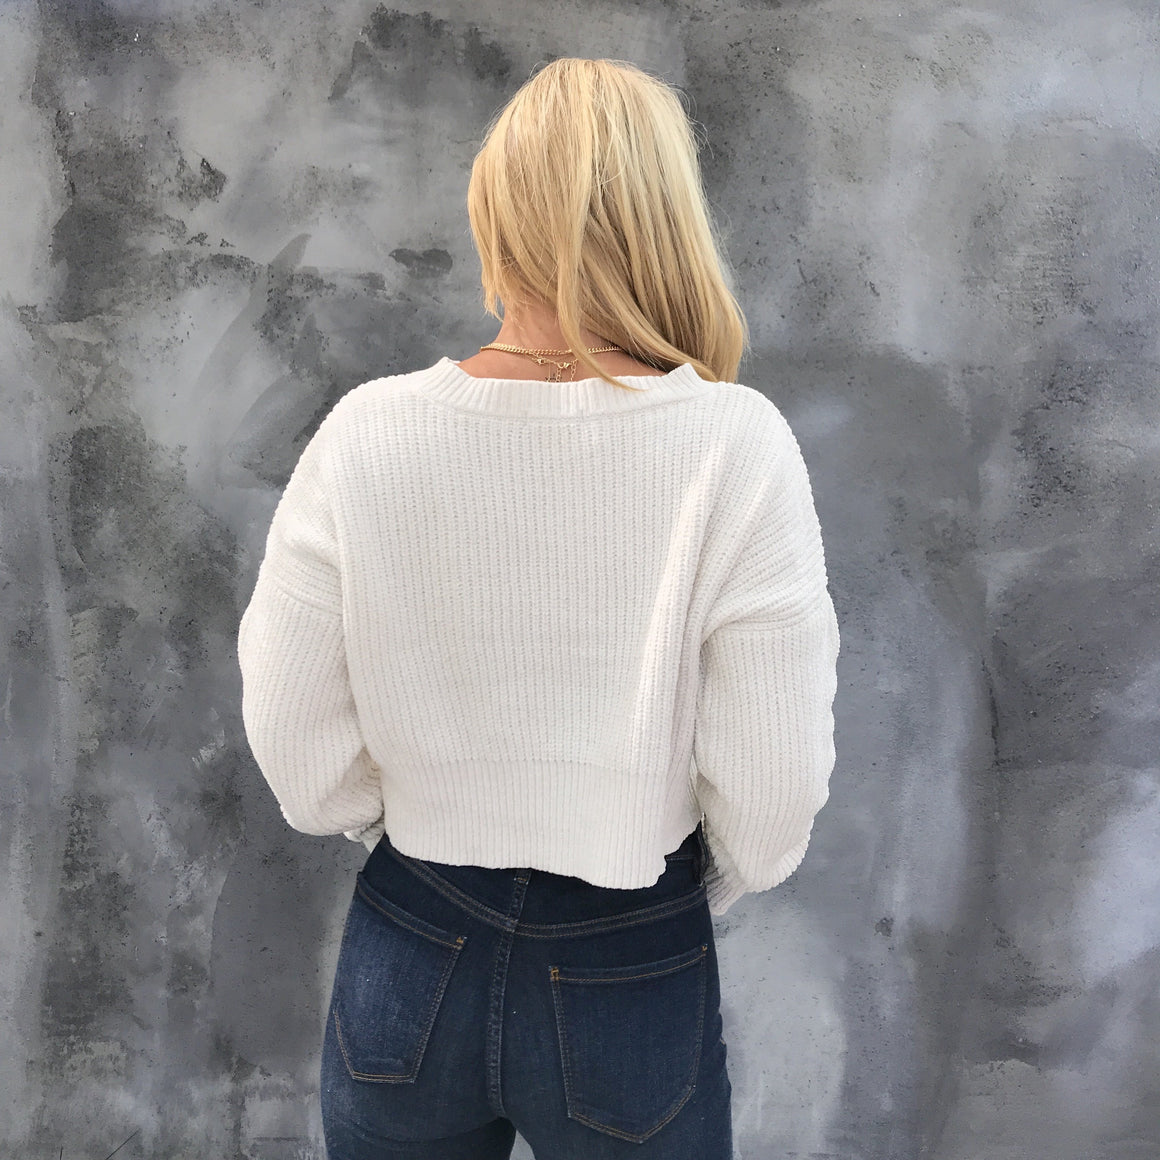 Glistening Snow Knit Sweater - Dainty Hooligan